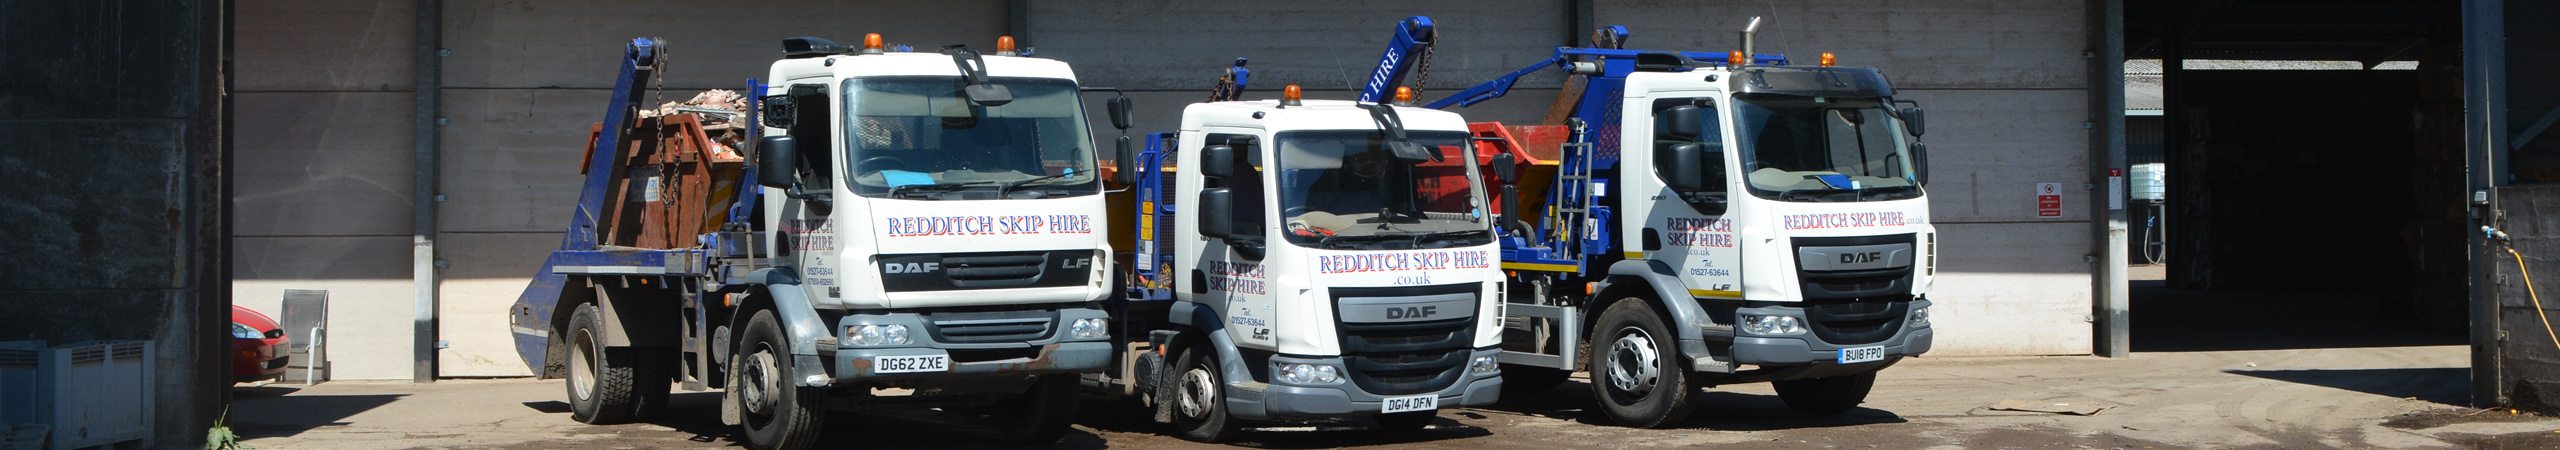 Redditch Skip Hire